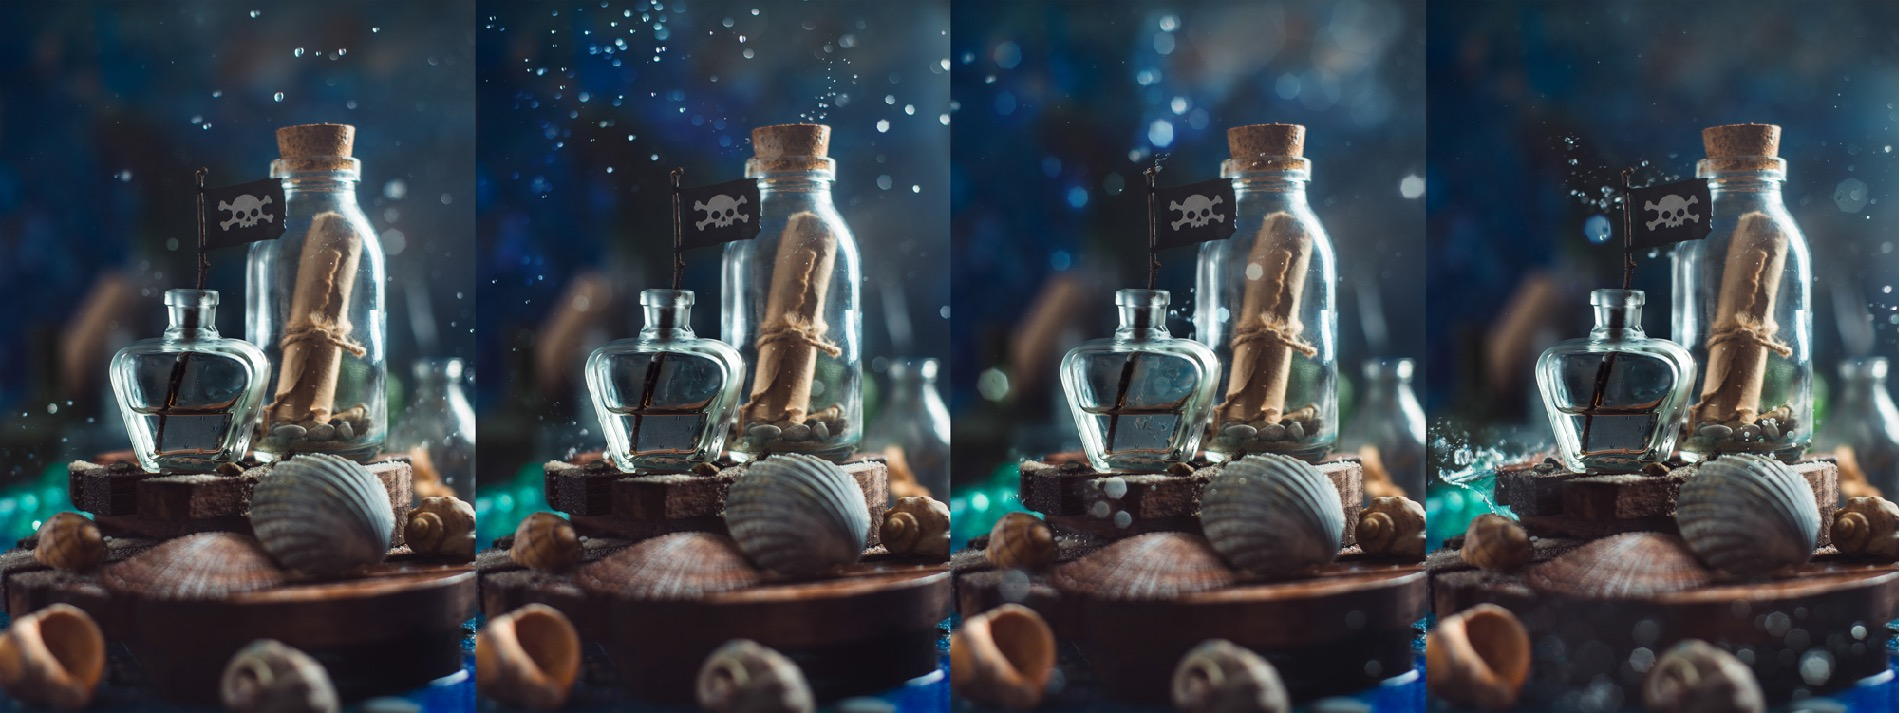 Dina-Belenko-Pirate-Still-Life-Tutorial